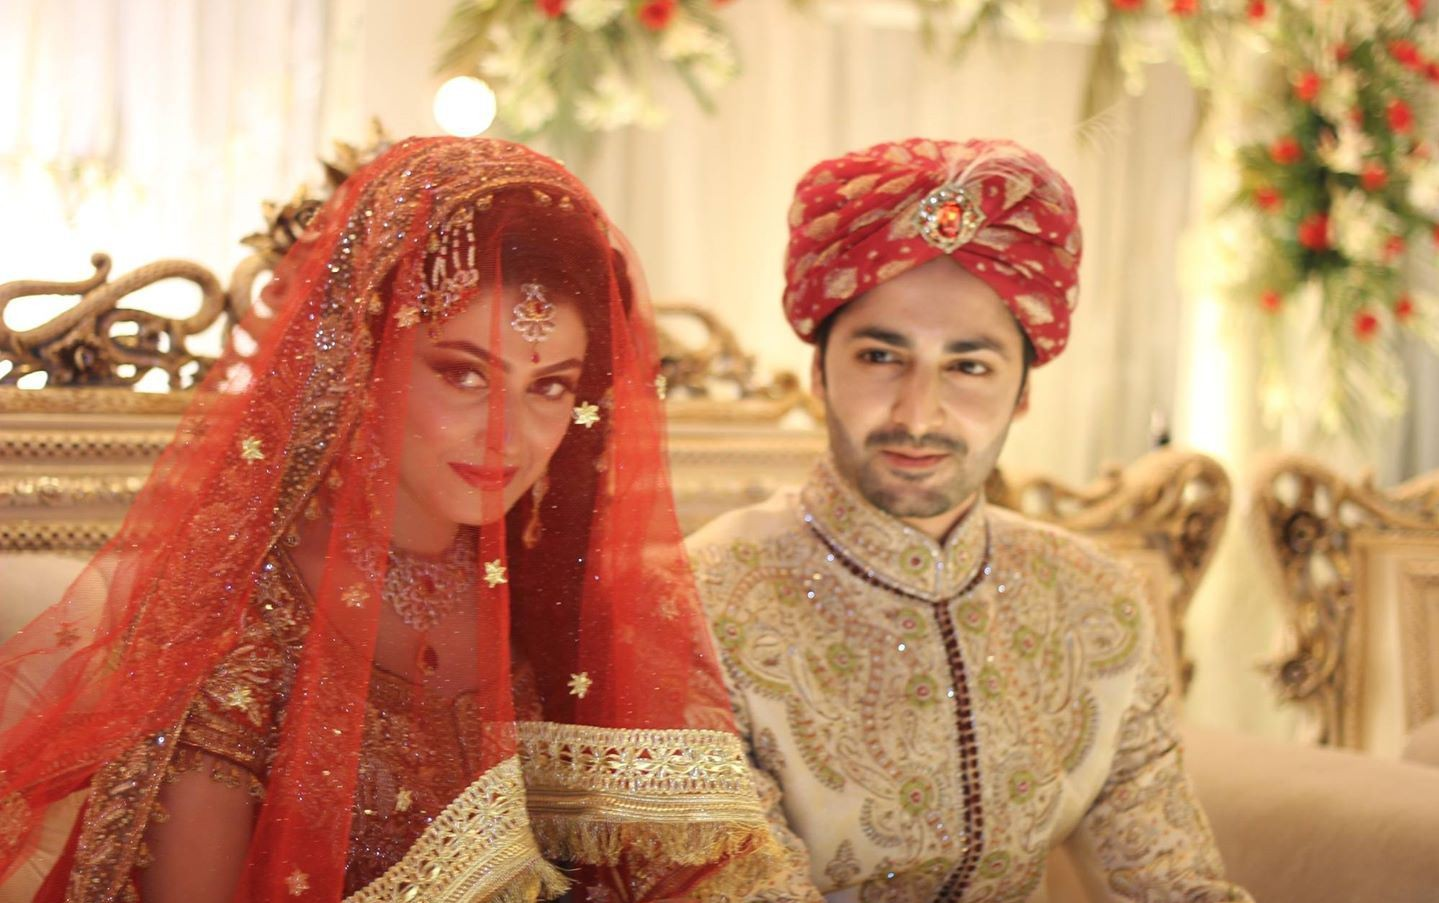 How to Find the Best & Authentic Shaadi Websites in